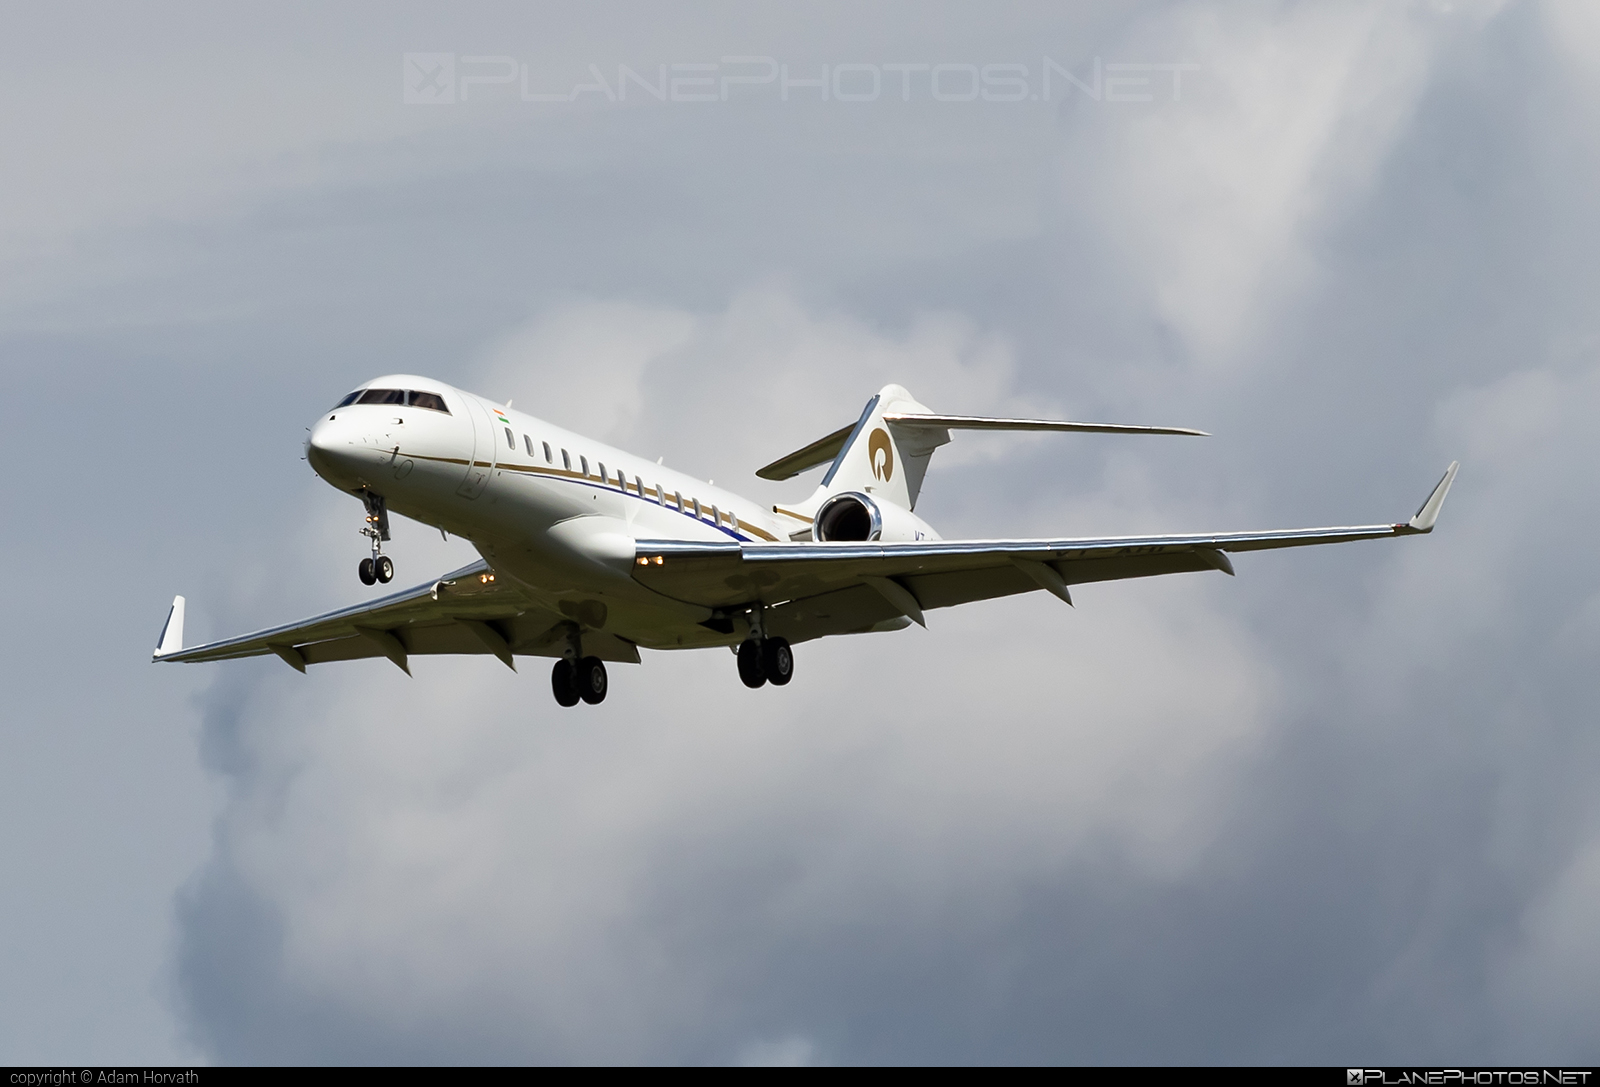 Bombardier Global 6000 (BD-700-1A10) - VT-AHI operated by Private operator #bd7001a10 #bombardier #bombardierglobal6000 #global6000